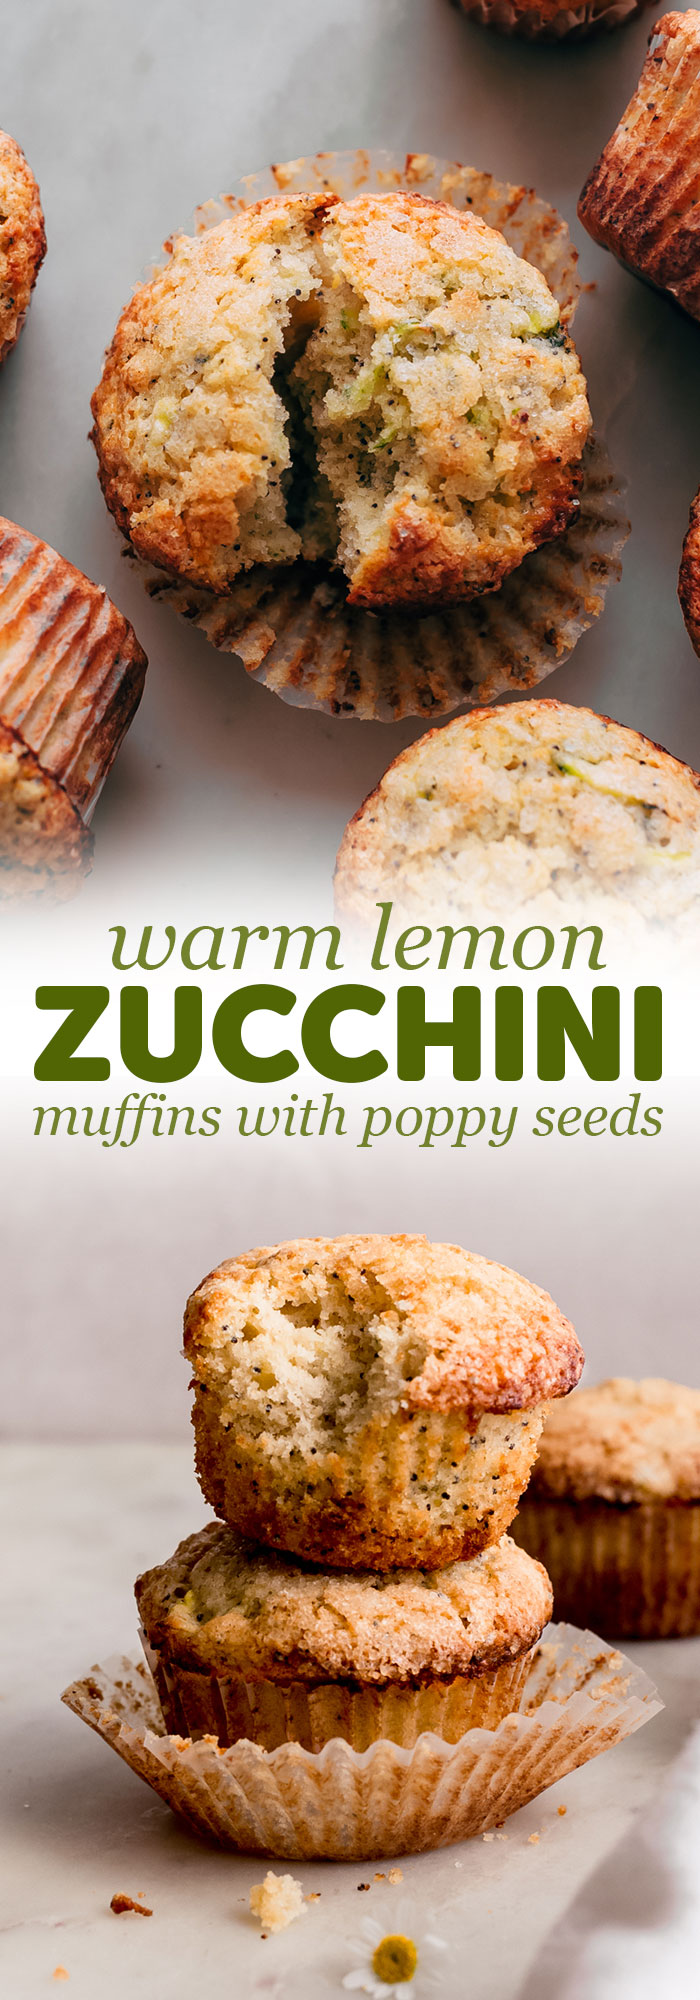 Warm Lemon Zucchini Muffins - these muffins are tender as can be and loaded with spices and zucchini. So good you'll never make any other zucchini muffin recipe again! #zucchinimuffins #lemonzucchinimuffins #lemonpoppyseedmuffins #muffins #baking | Littlespicejar.com